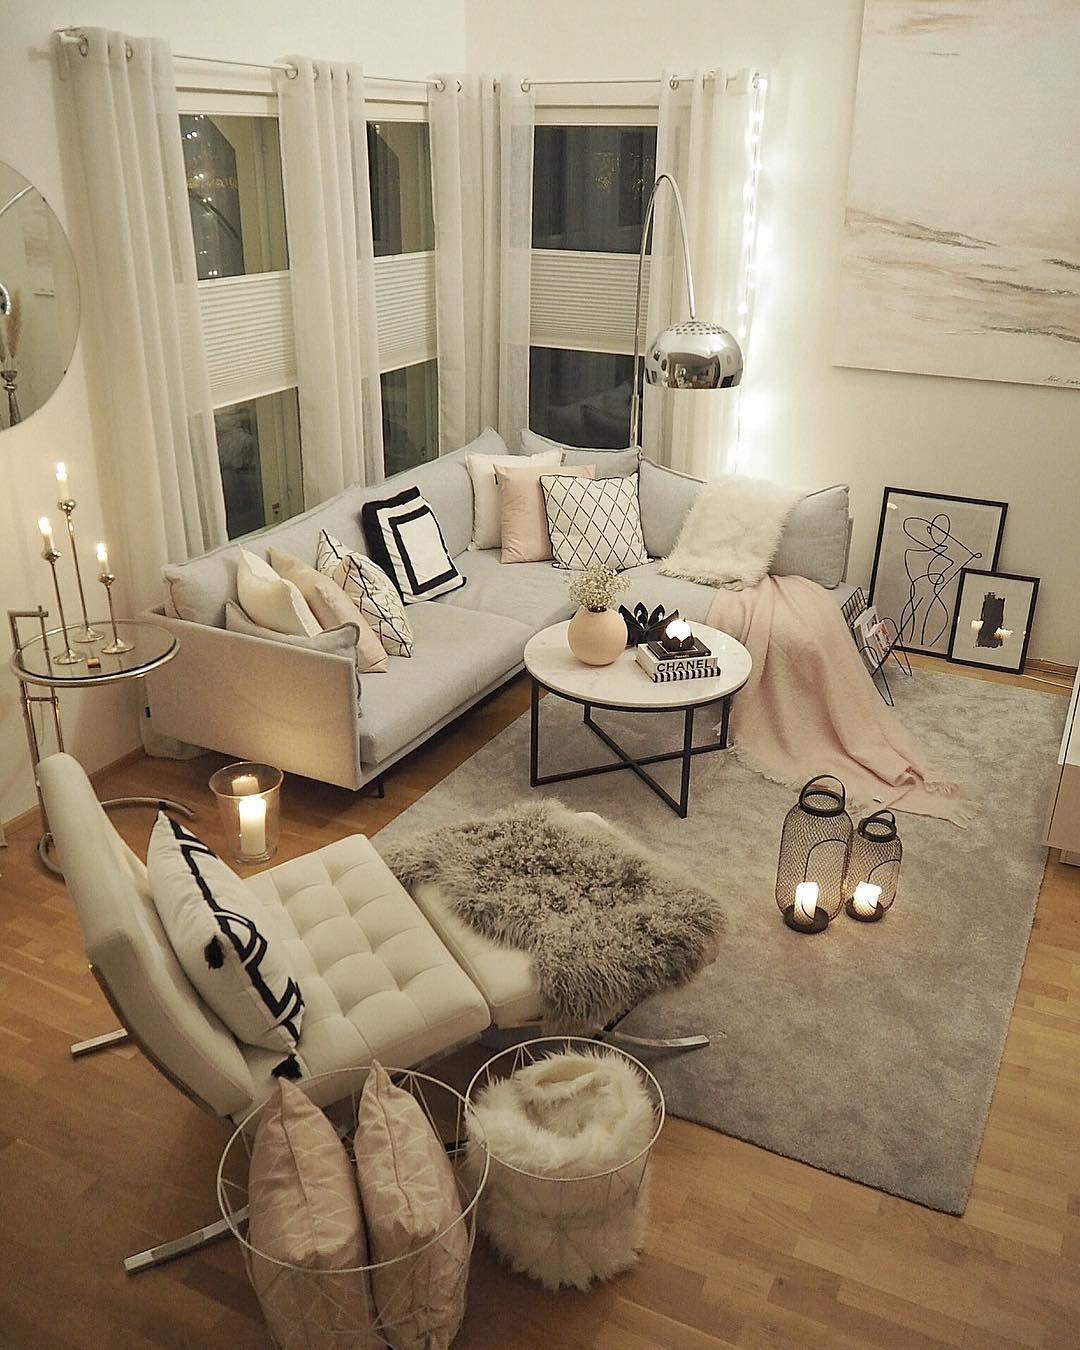 Home Decor Lifestyle Kids On Instagram Wish You All Amazing Evening Condo Living Room Scandi Living Room Girly Living Room